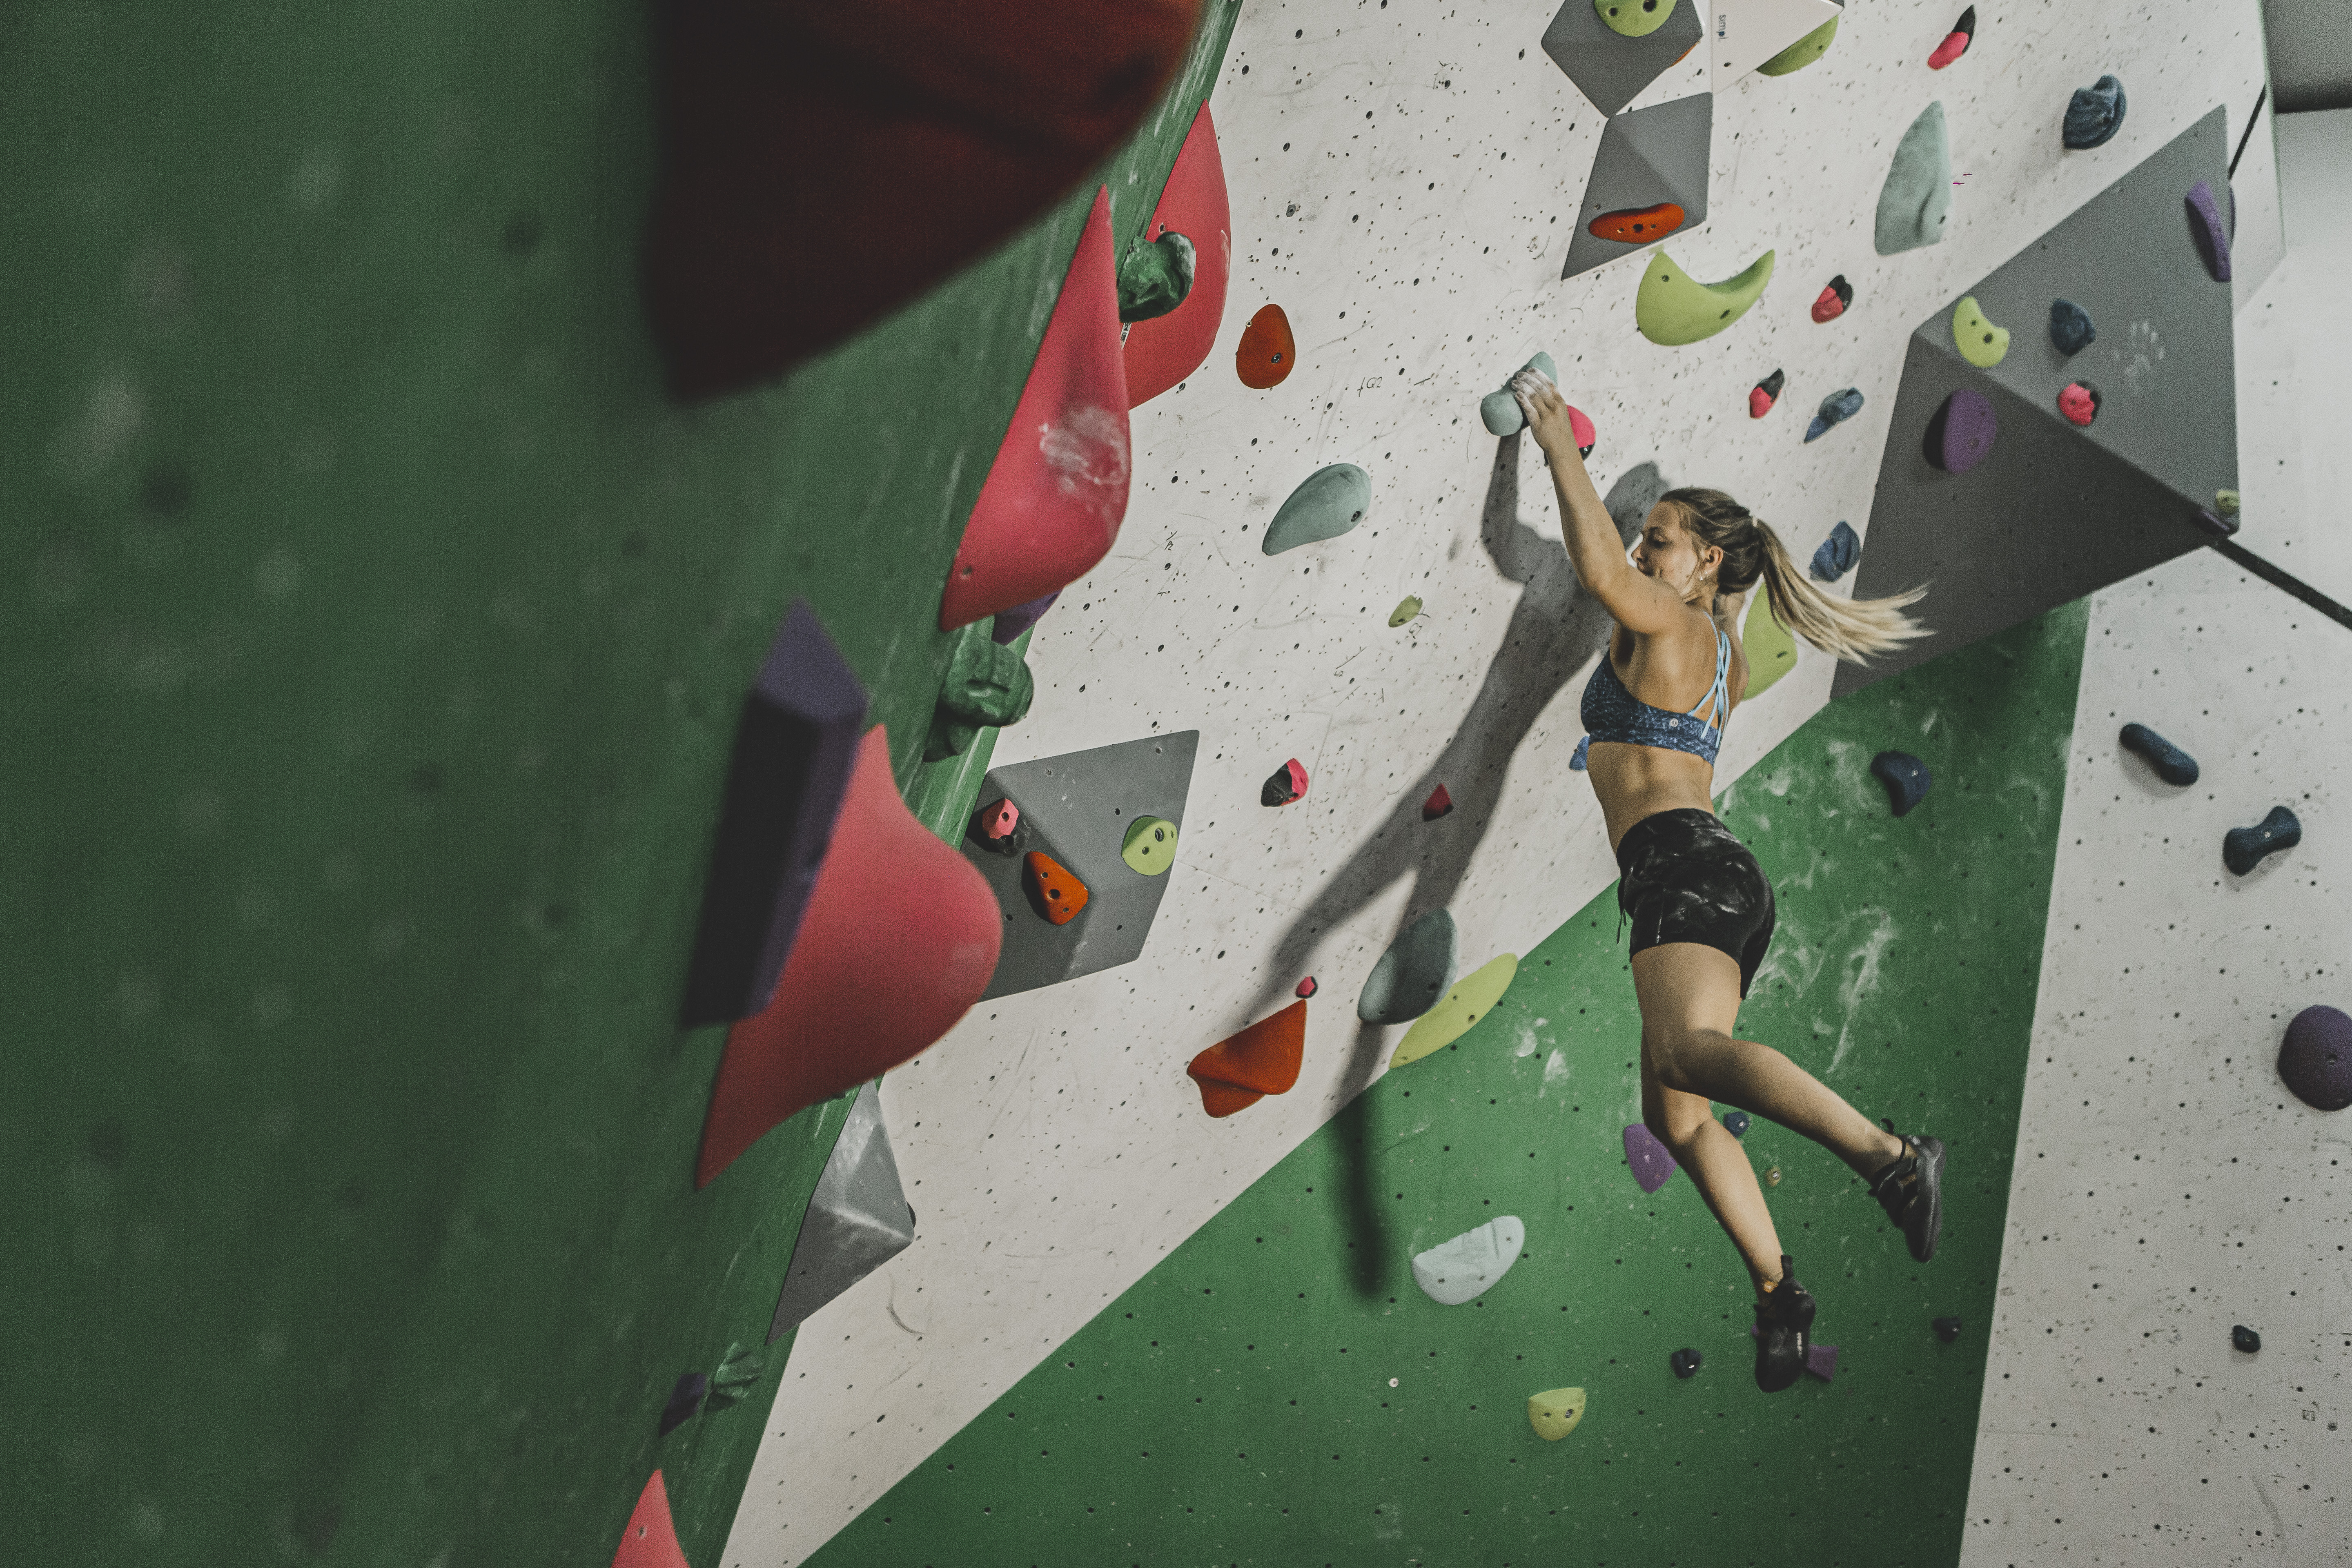 Winter Boulder League 2020, 18th of Feb